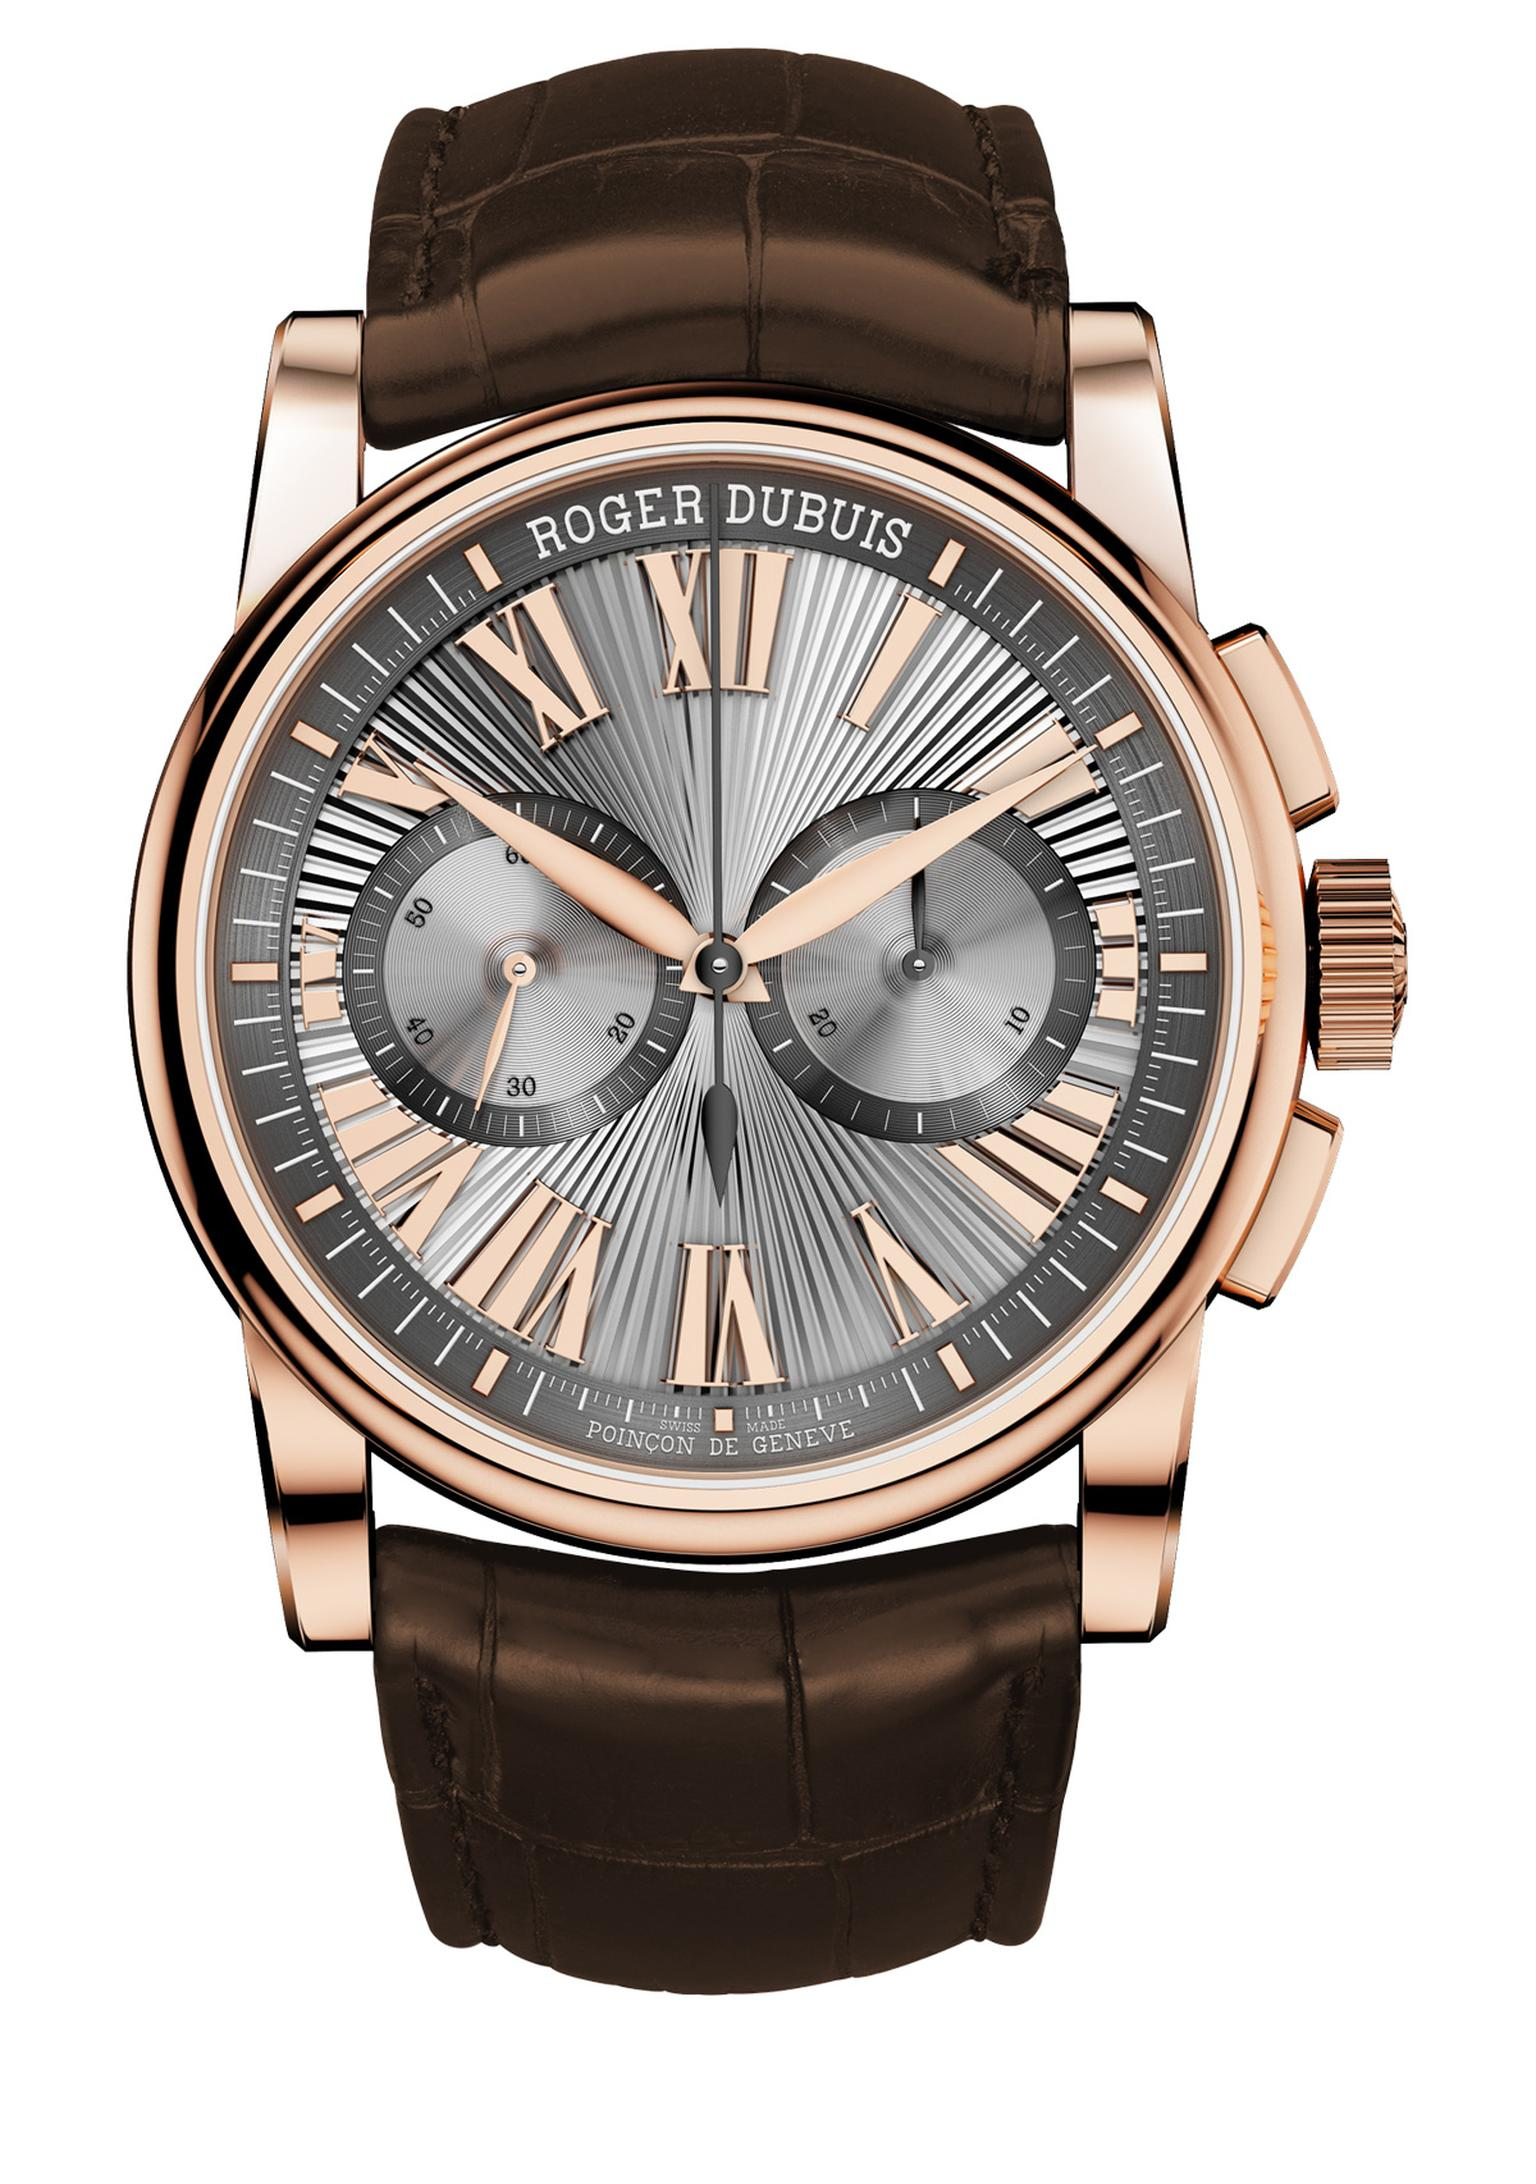 Roger Dubuis Hommage Chronograph in pink gold_20140408_Zoom